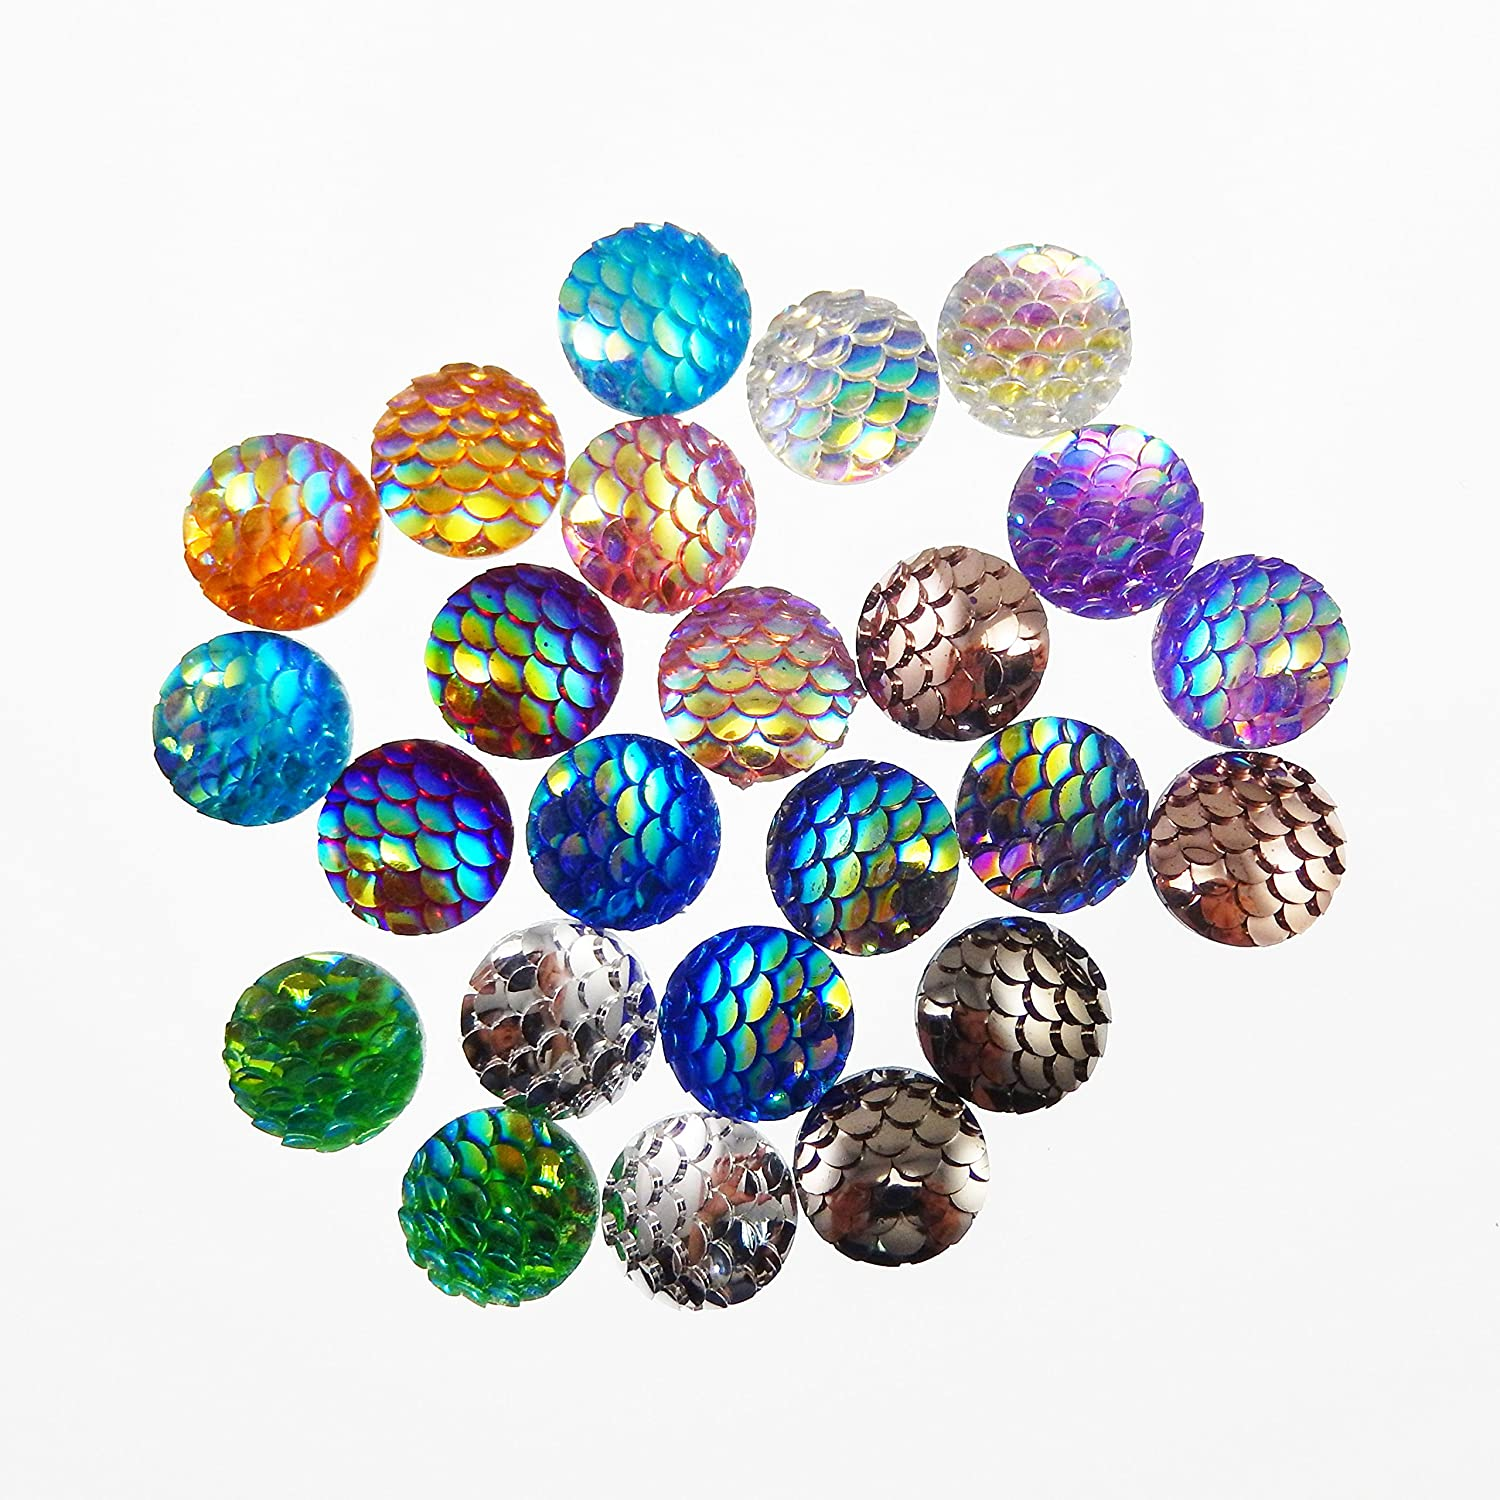 JulieWang 100pcs Mermaid Scales Skin Cabochons Resin Mixed Shinny Color for Jewelry Making (12x12mm) Julie Wang